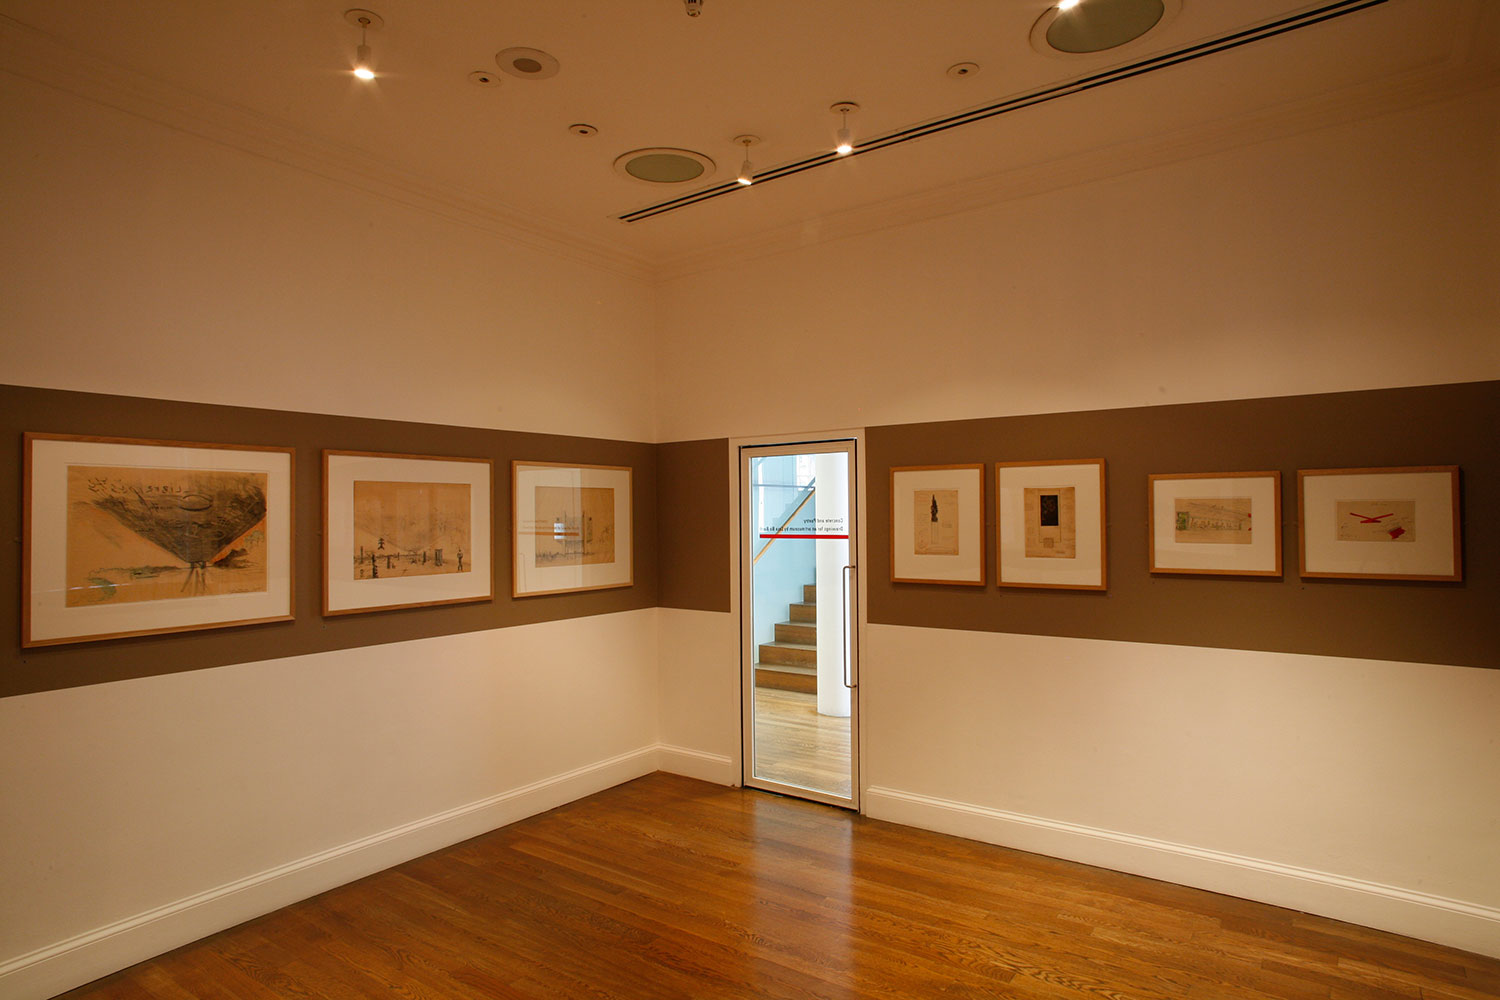 Installation view of Concrete and Poetry: Drawings for an art museum by Lina Bo Bardi 2